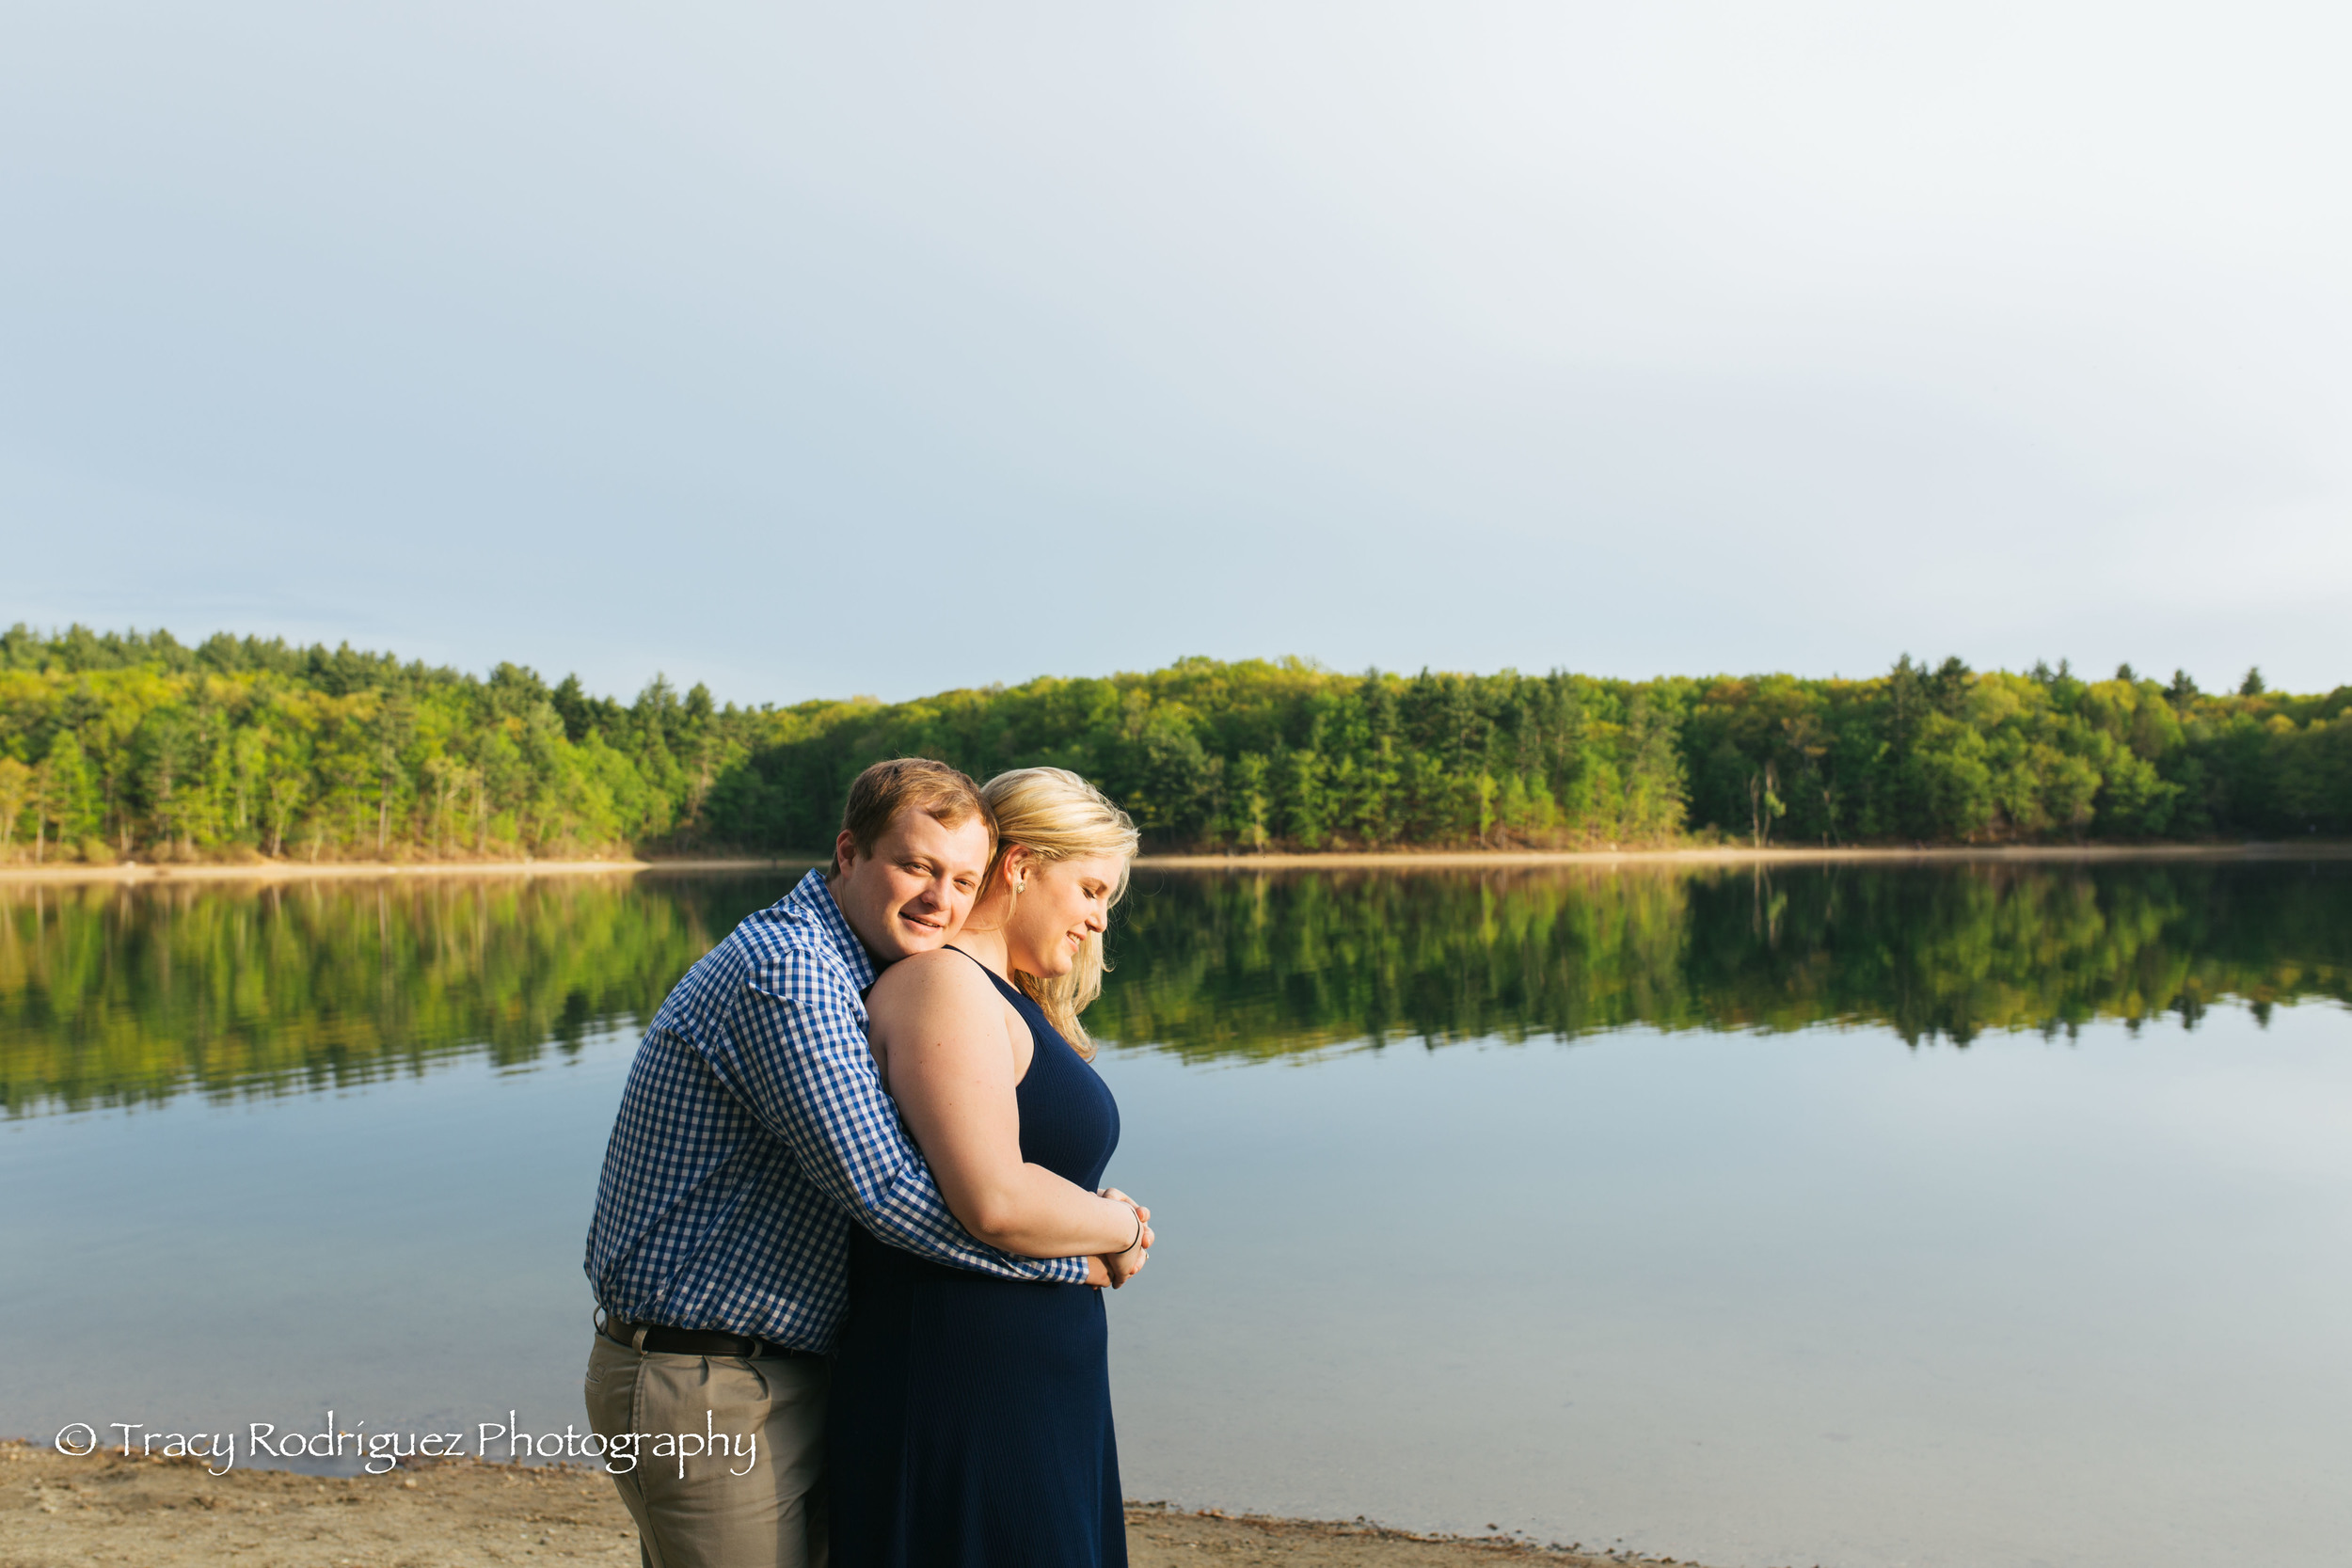 TracyRodriguezPhotography-Engagement-LowRes-51.jpg